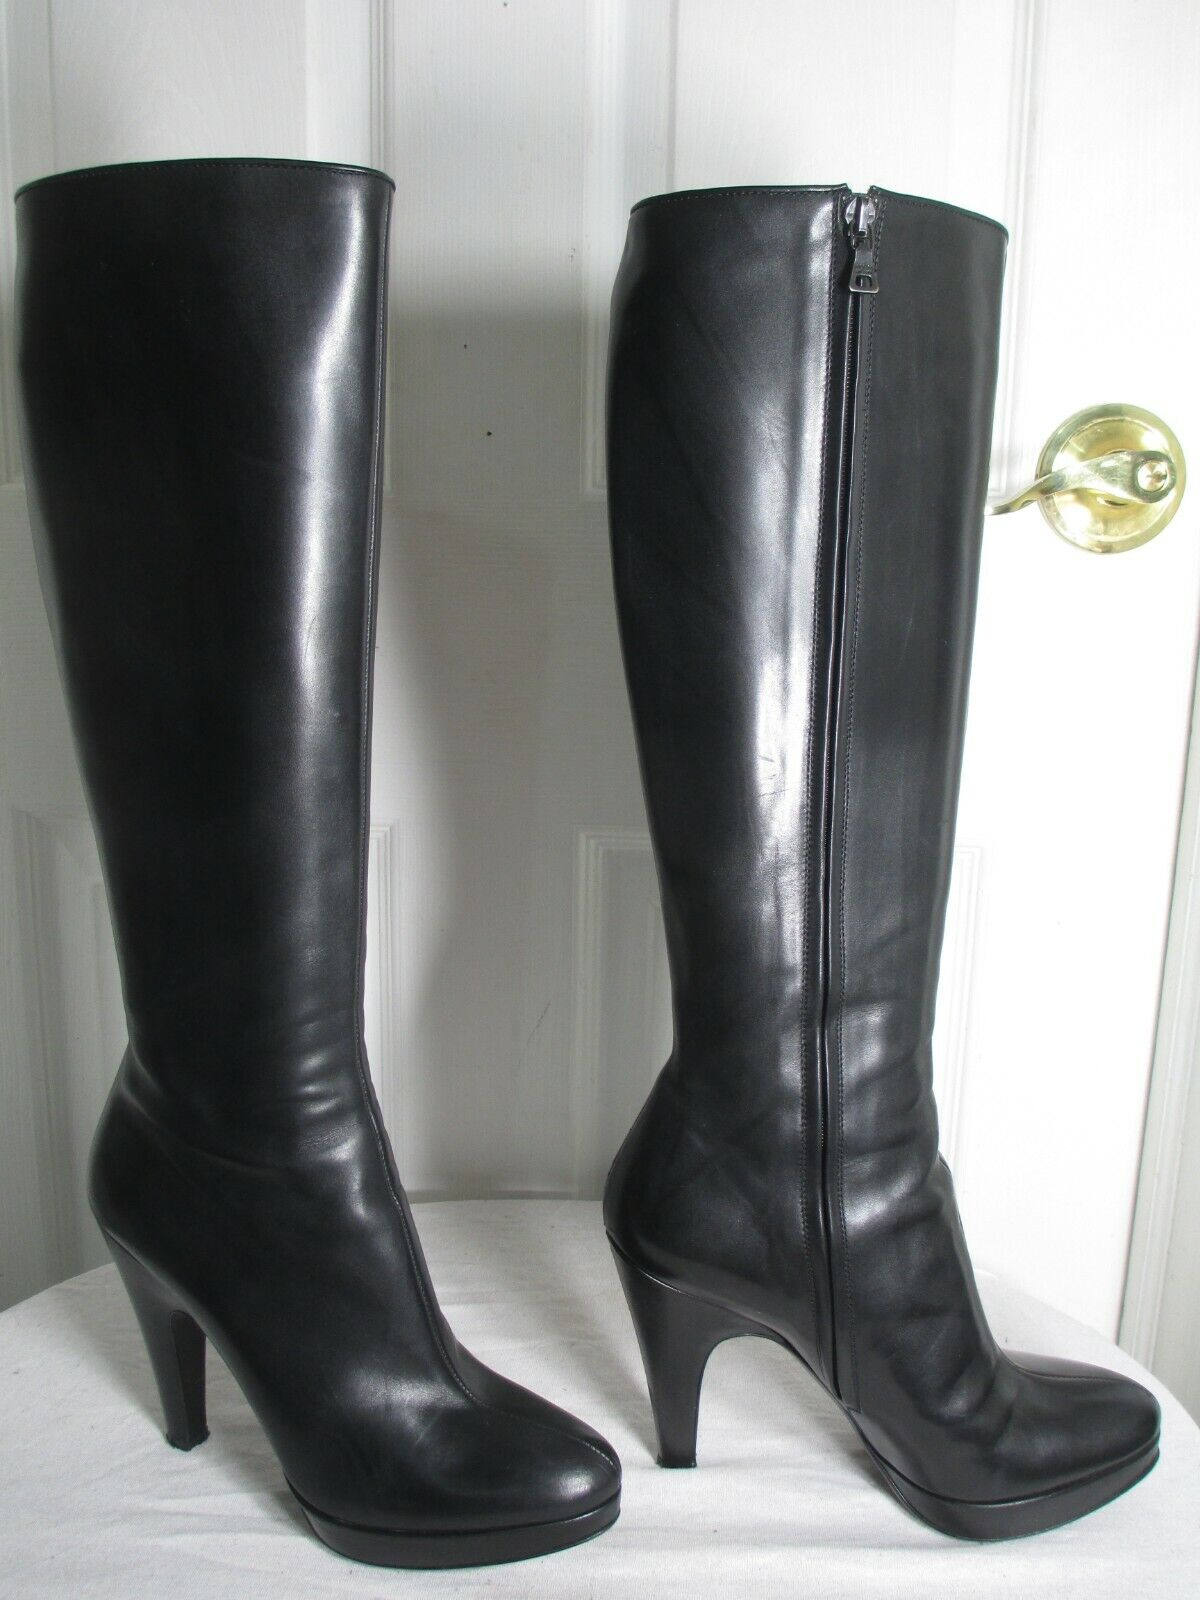 PRADA LUXE BLACK LEATHER HEEL PLATFORM TALL ZIP BOOTS 37½ US 7½ M MADE IN ITALY